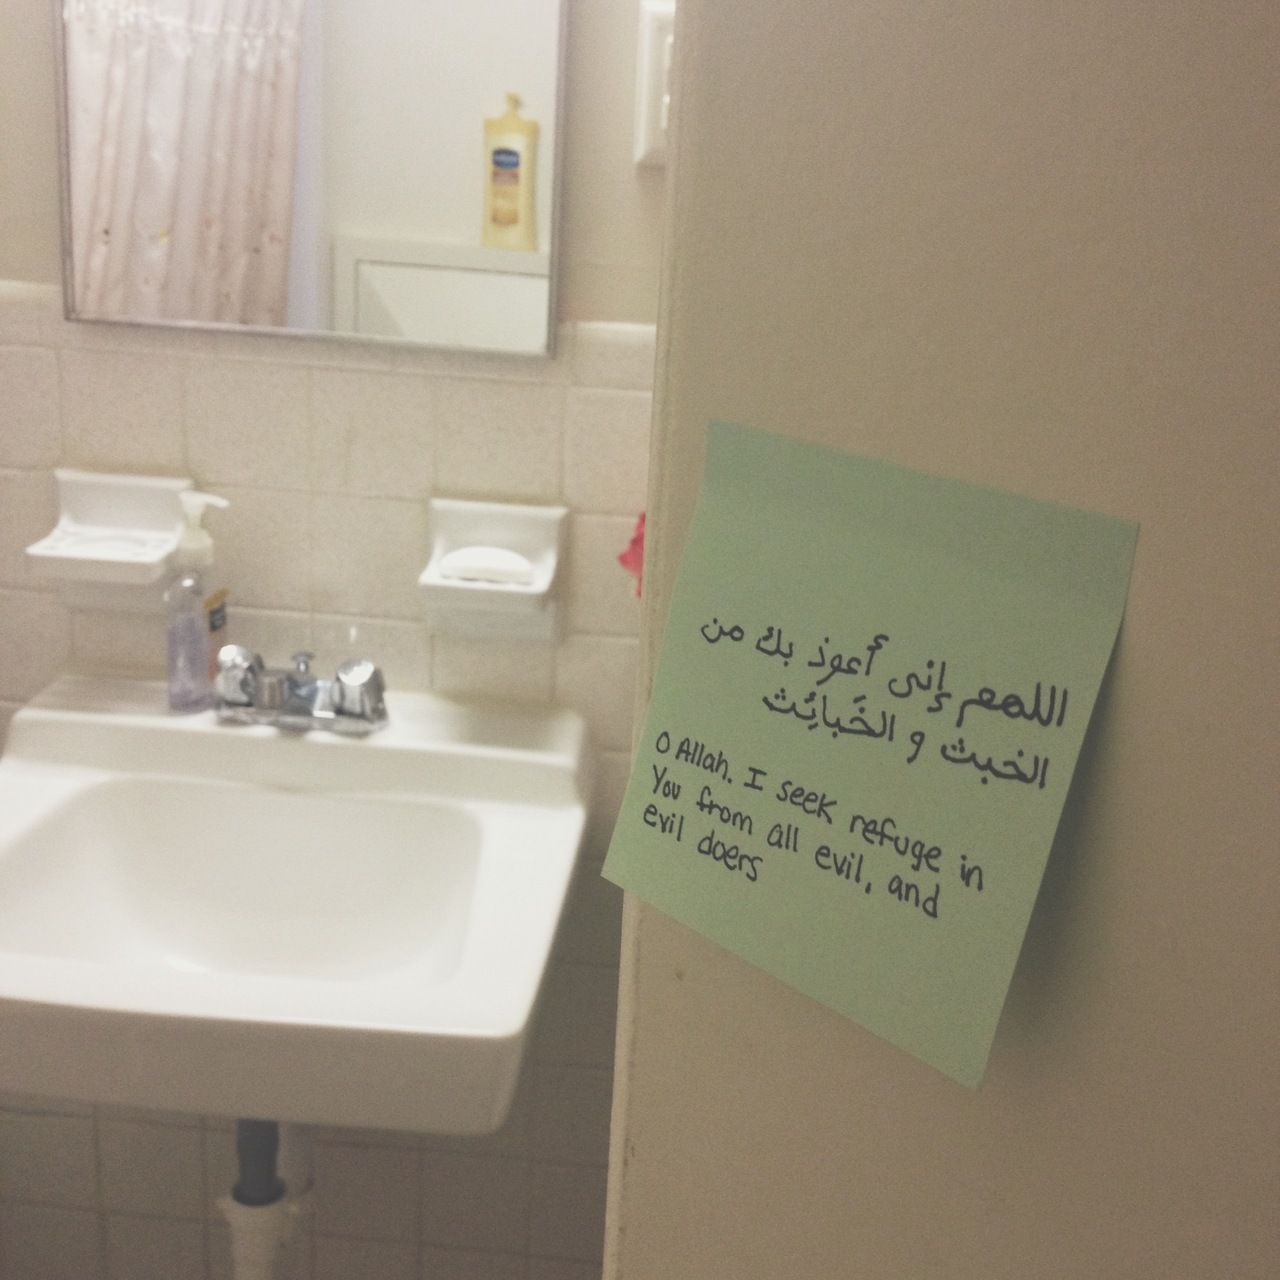 My day in Ad iyah   Islamic Quotes While entering the bathroom toilet dua. My day in Ad iyah   Islamic Quotes While entering the bathroom